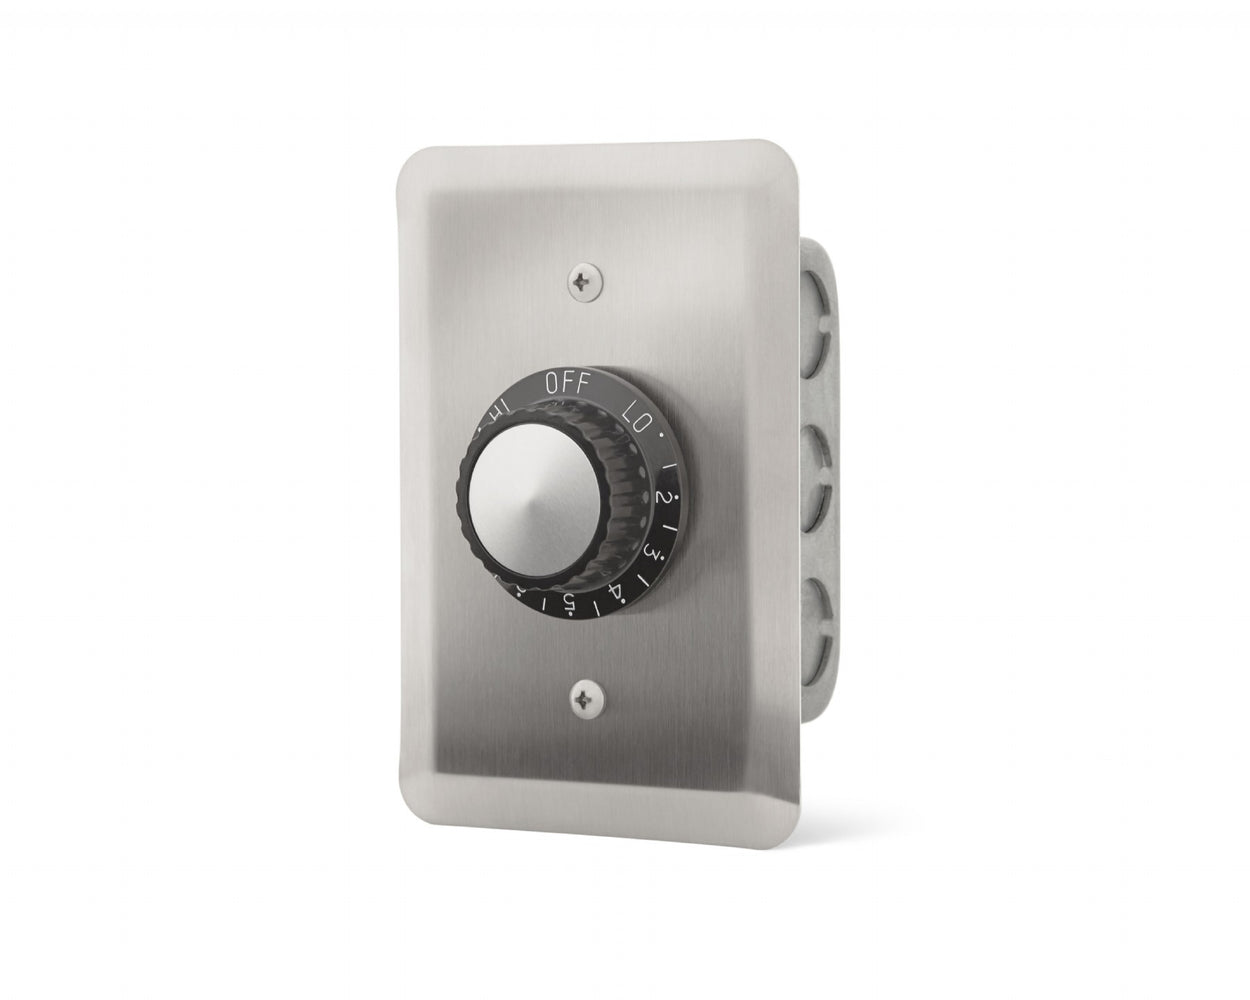 INFRATECH SINGLE REGULATOR W/ STAINLESS STEEL WALL PLATE | Outdoor Heating NZ | Infratech NZ | | Outdoor Concepts